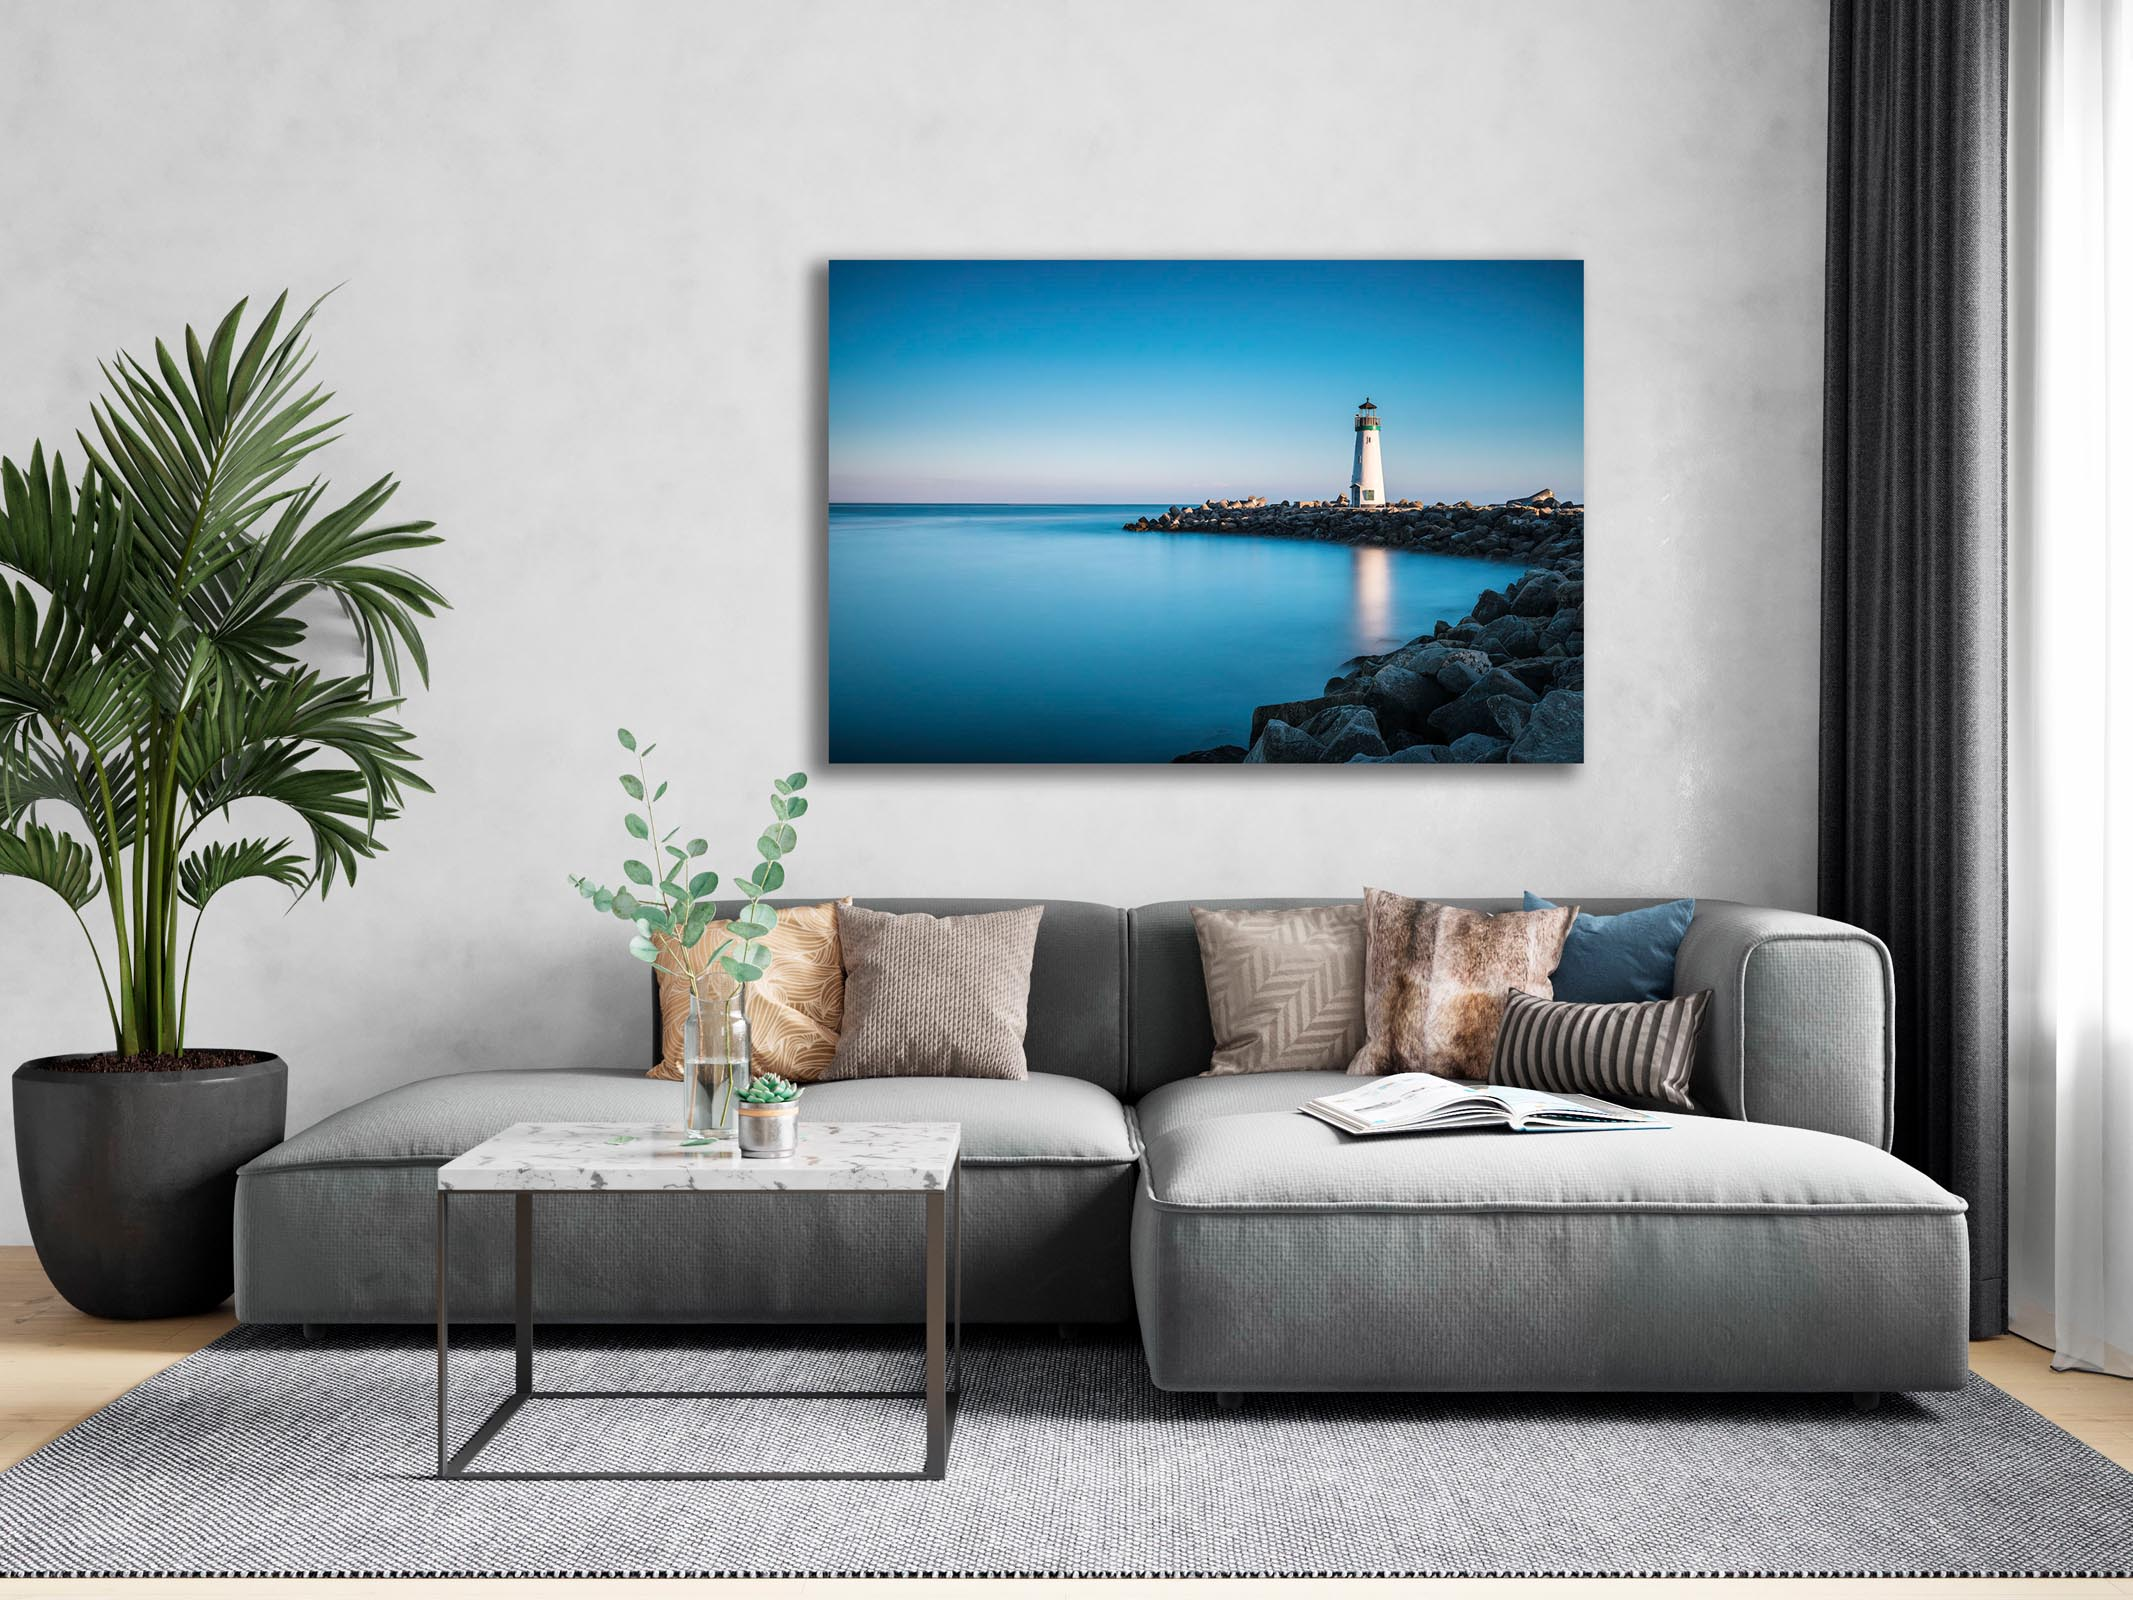 Wall art of Walton Lighthouse in Santa Cruz, California by Brent Goldman Photography